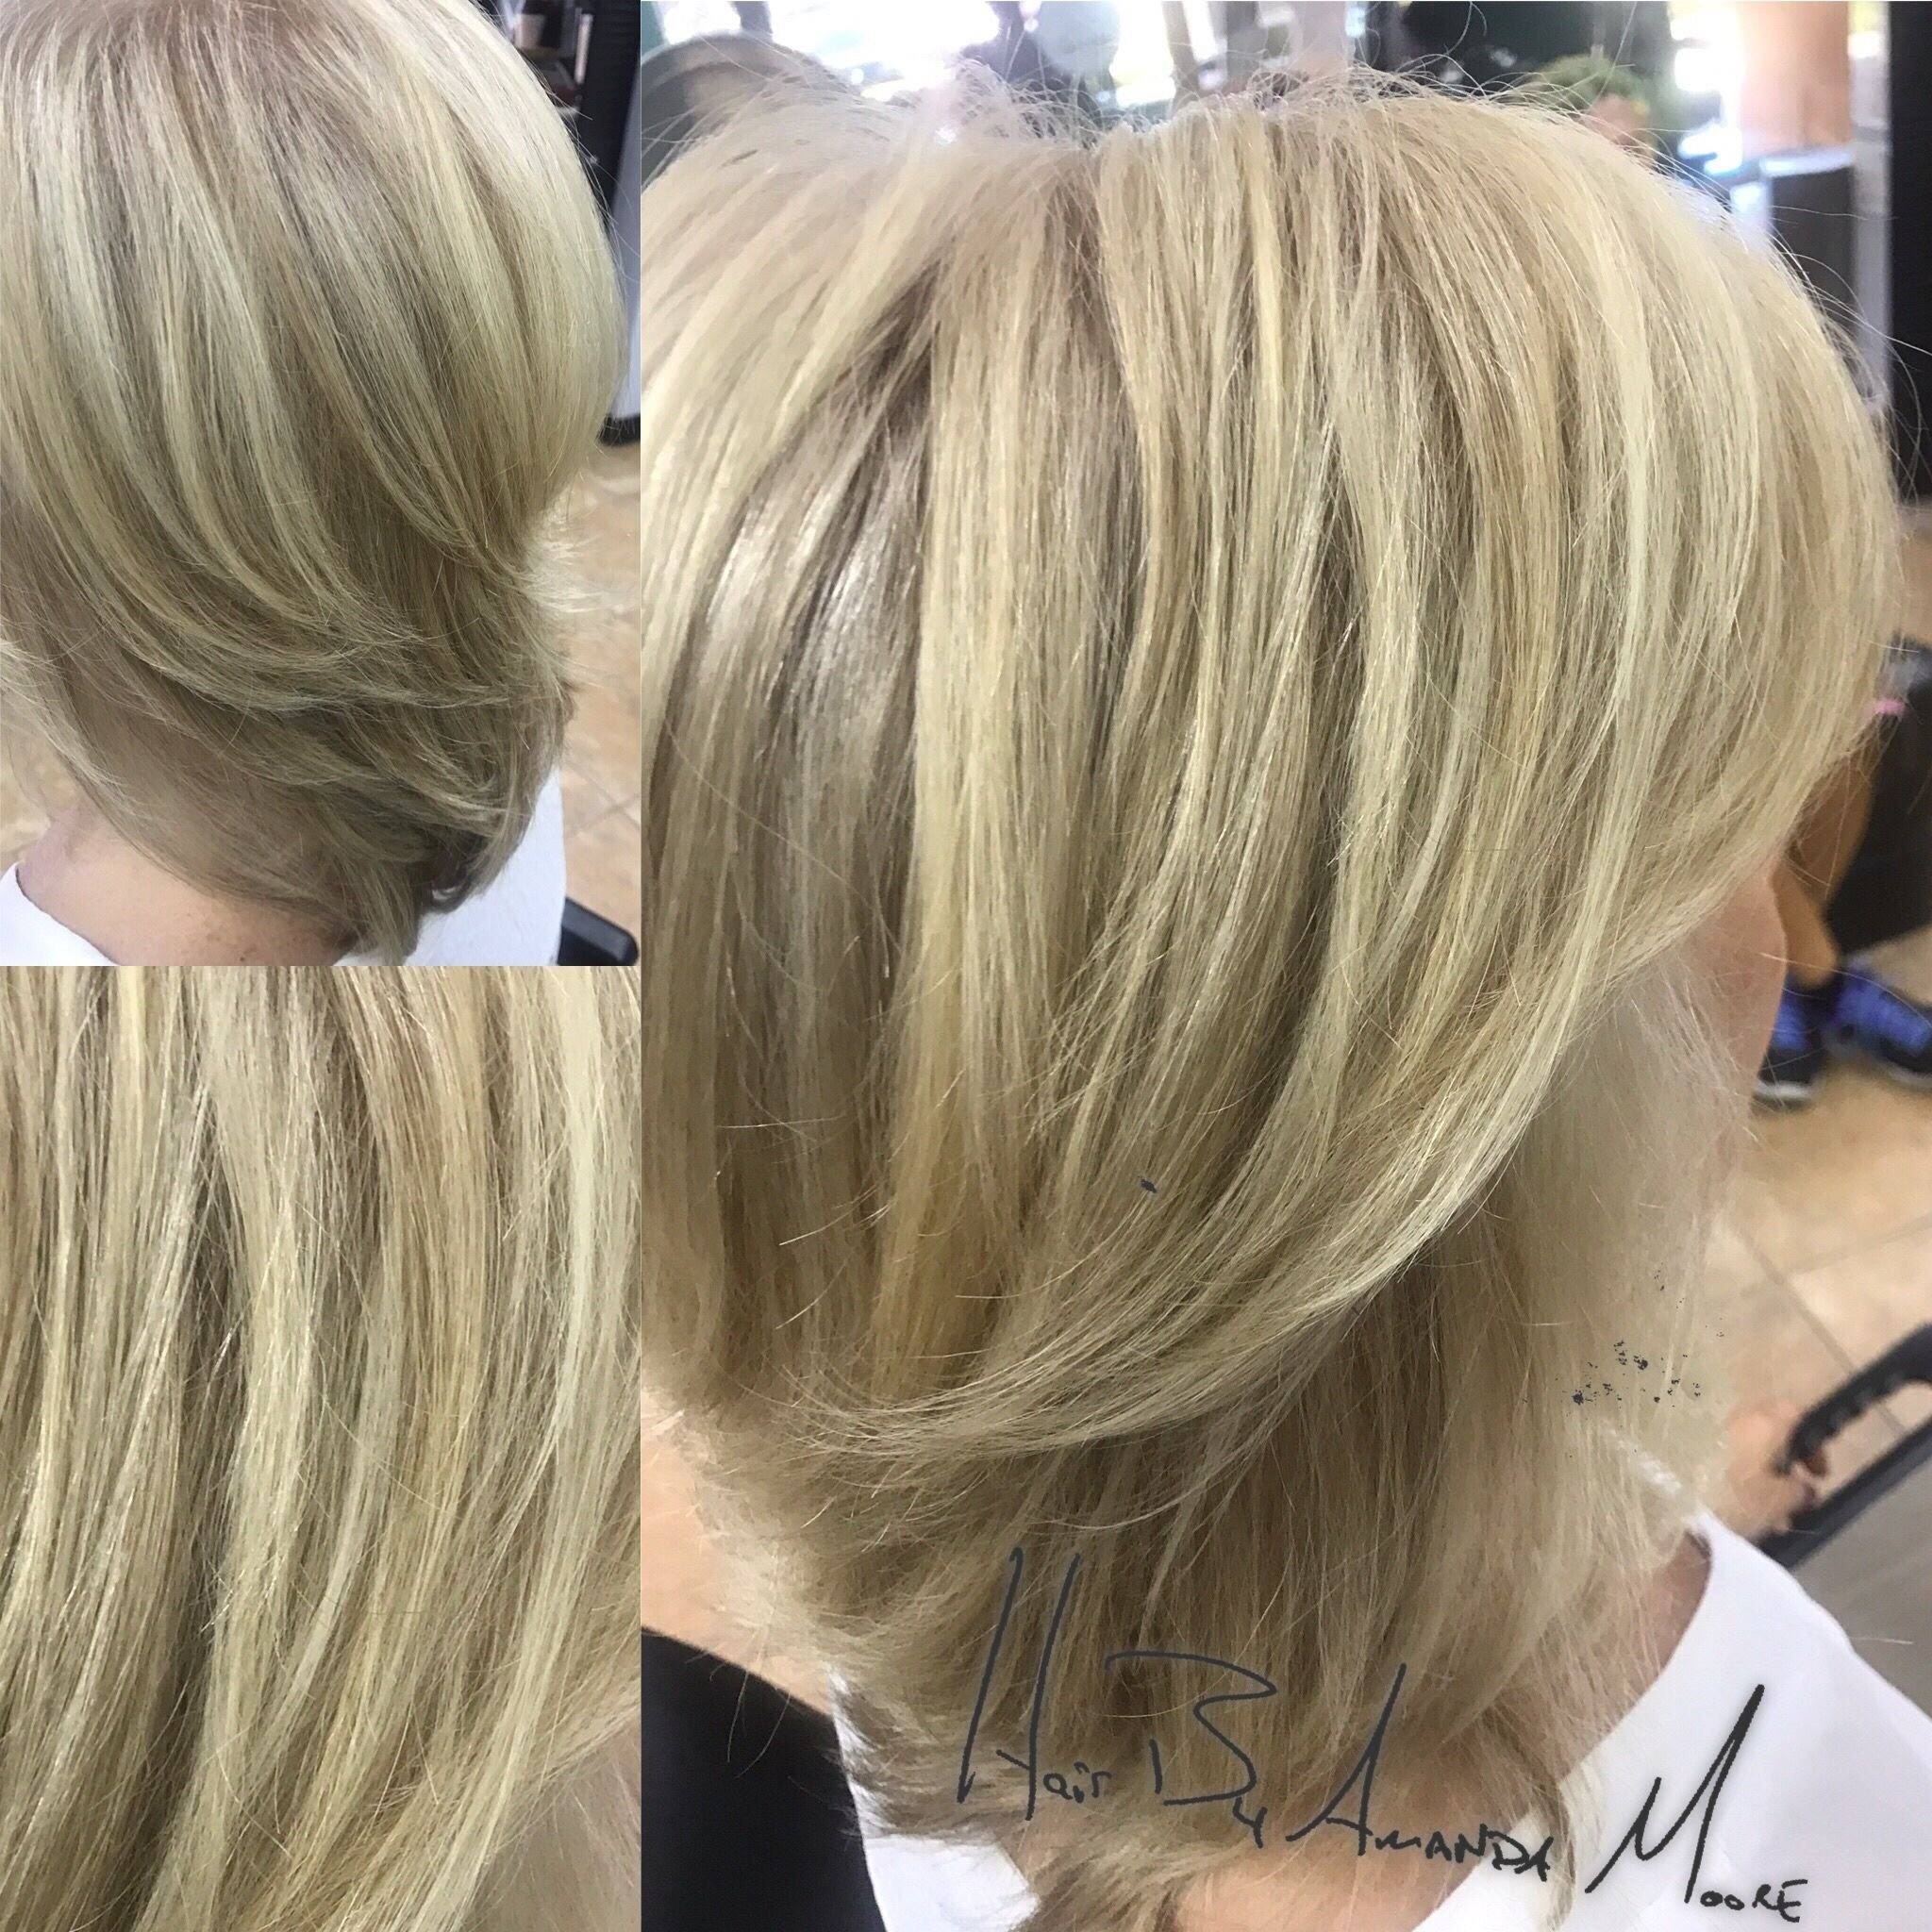 New 10N 10Nw Redken Chromatics Salonsantinas Behindthechair Ideas With Pictures